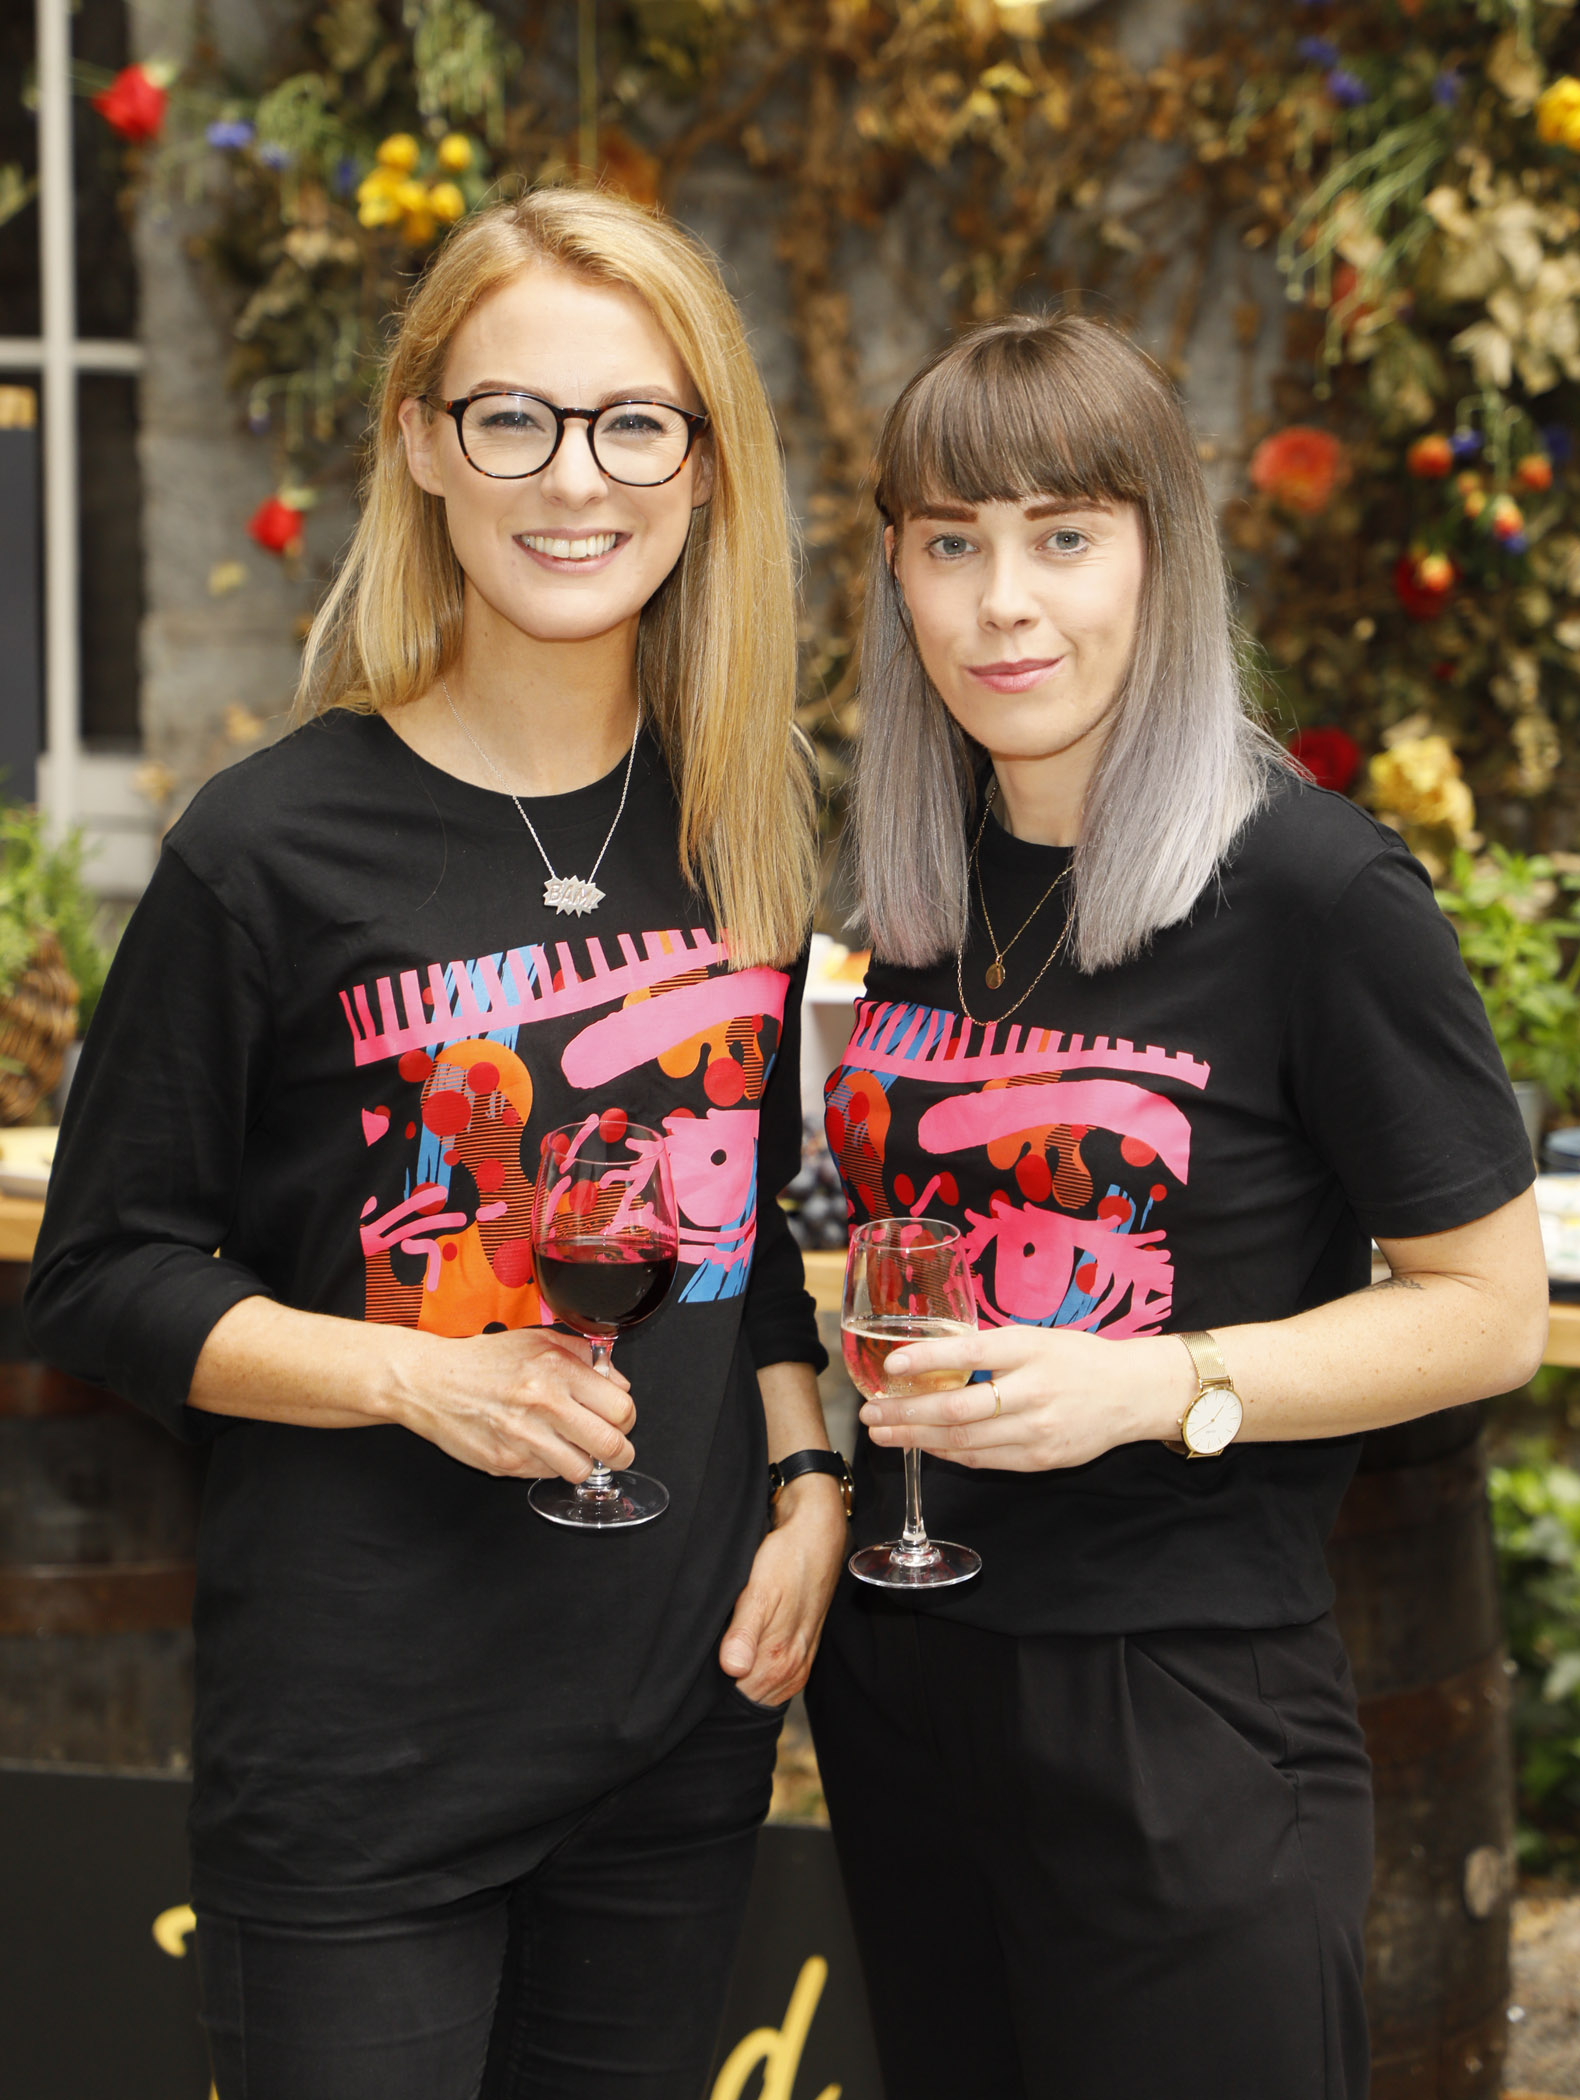 Jill Deering and Gillian Henderson at the Centra 'Wines We Love' event in Dublin. Photo: Kieran Harnett